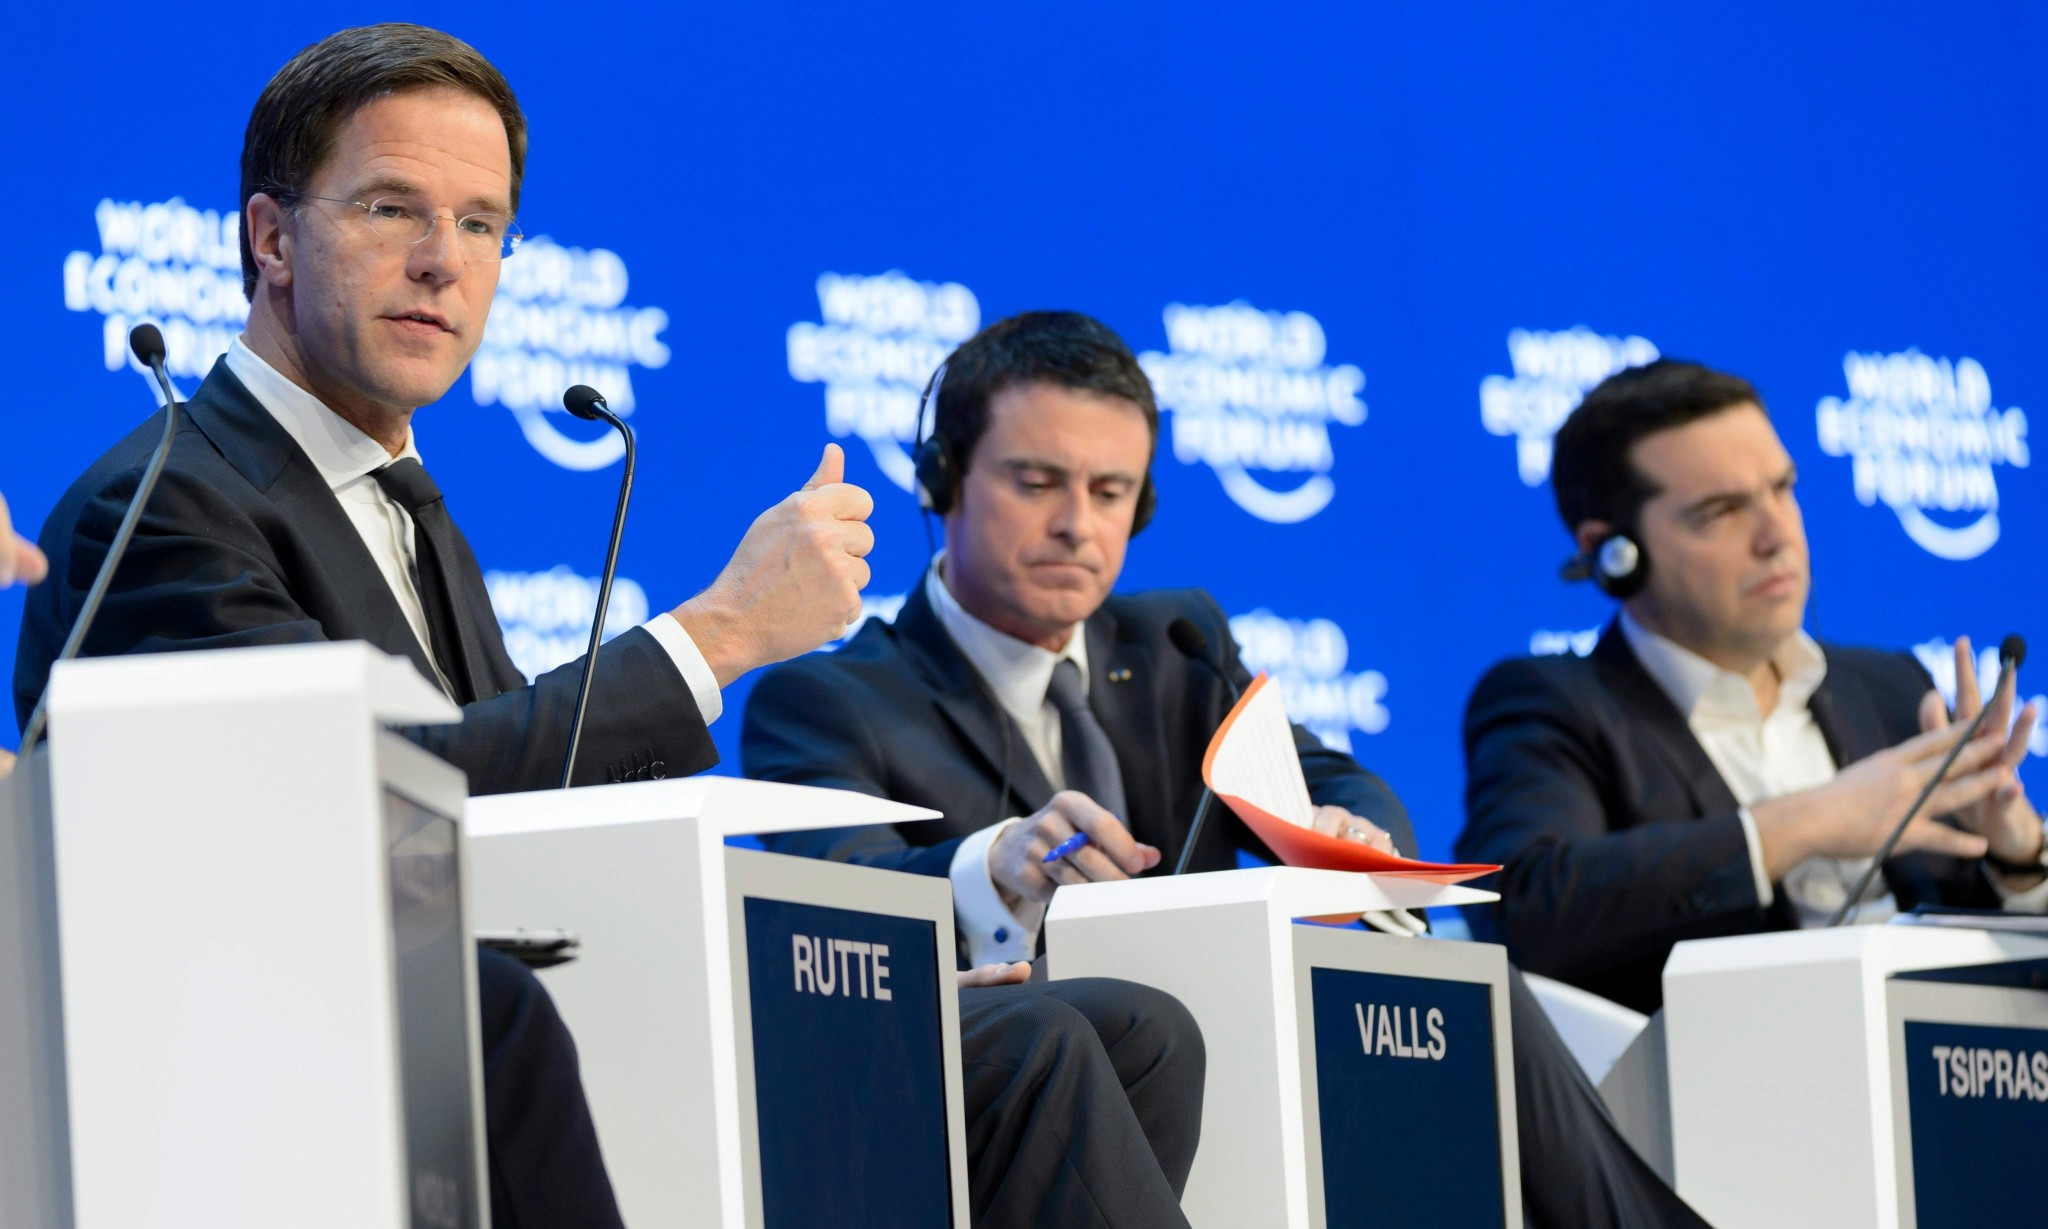 Dutch PM says refugee crisis could shut down Europe's open borders for good